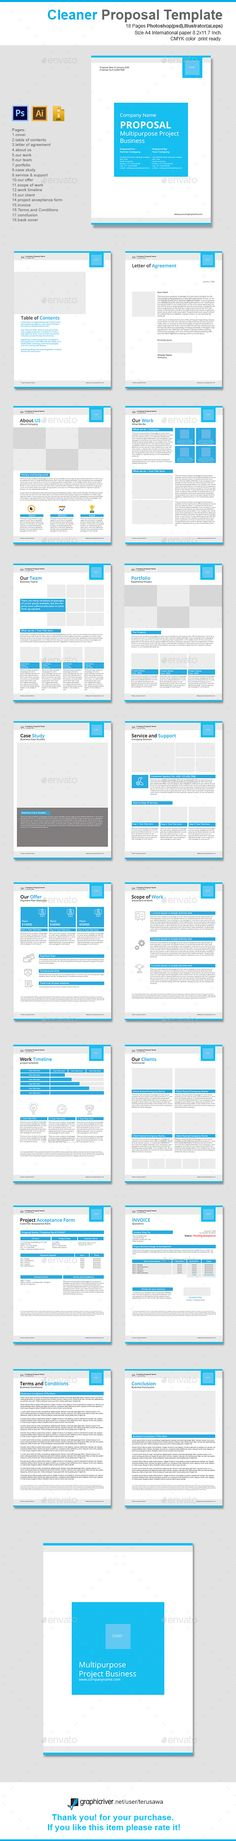 Sponsorship Prospectus Proposals, Template and Brochures - cleaning proposal template